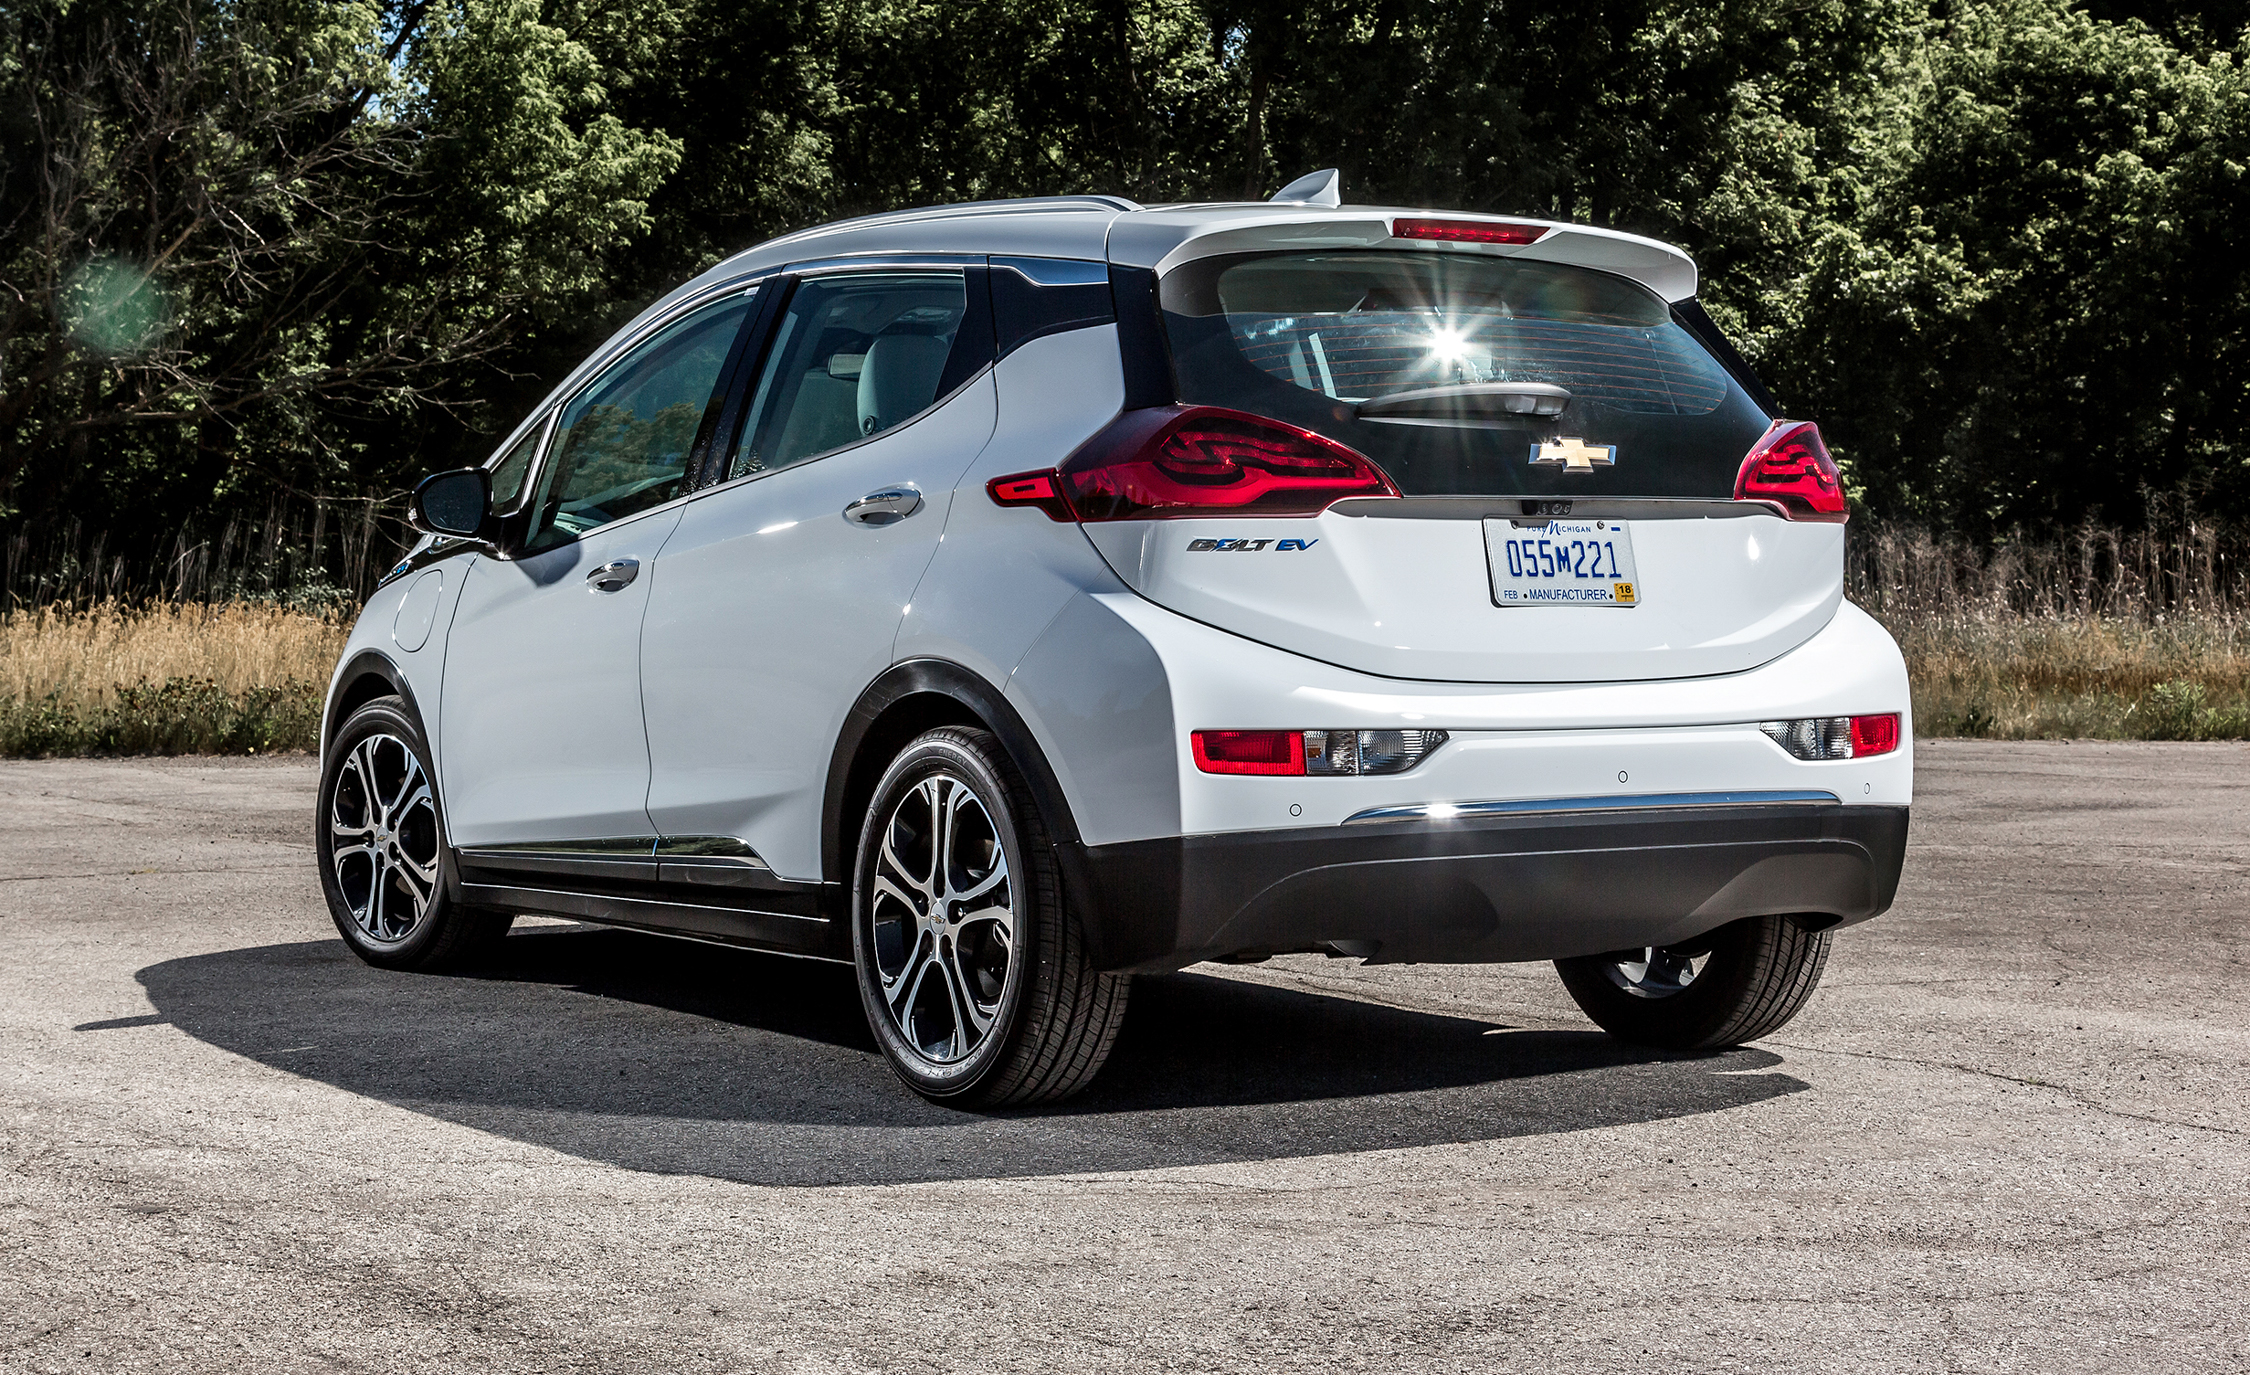 2017 Chevrolet Bolt Ev Exterior Rear (View 9 of 12)